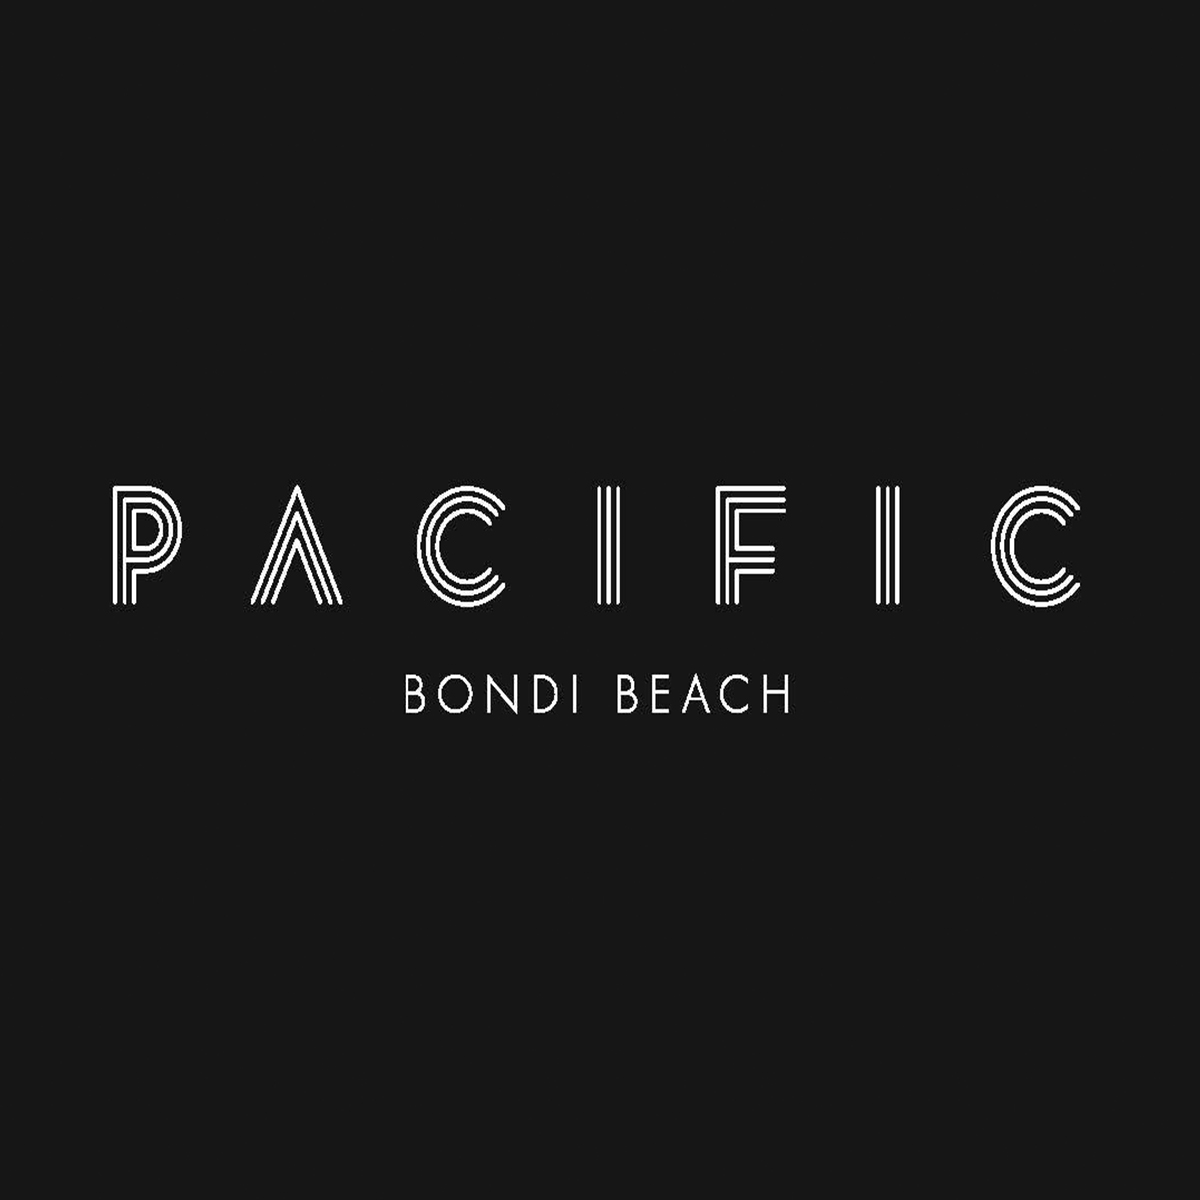 pacific bondi beach logo